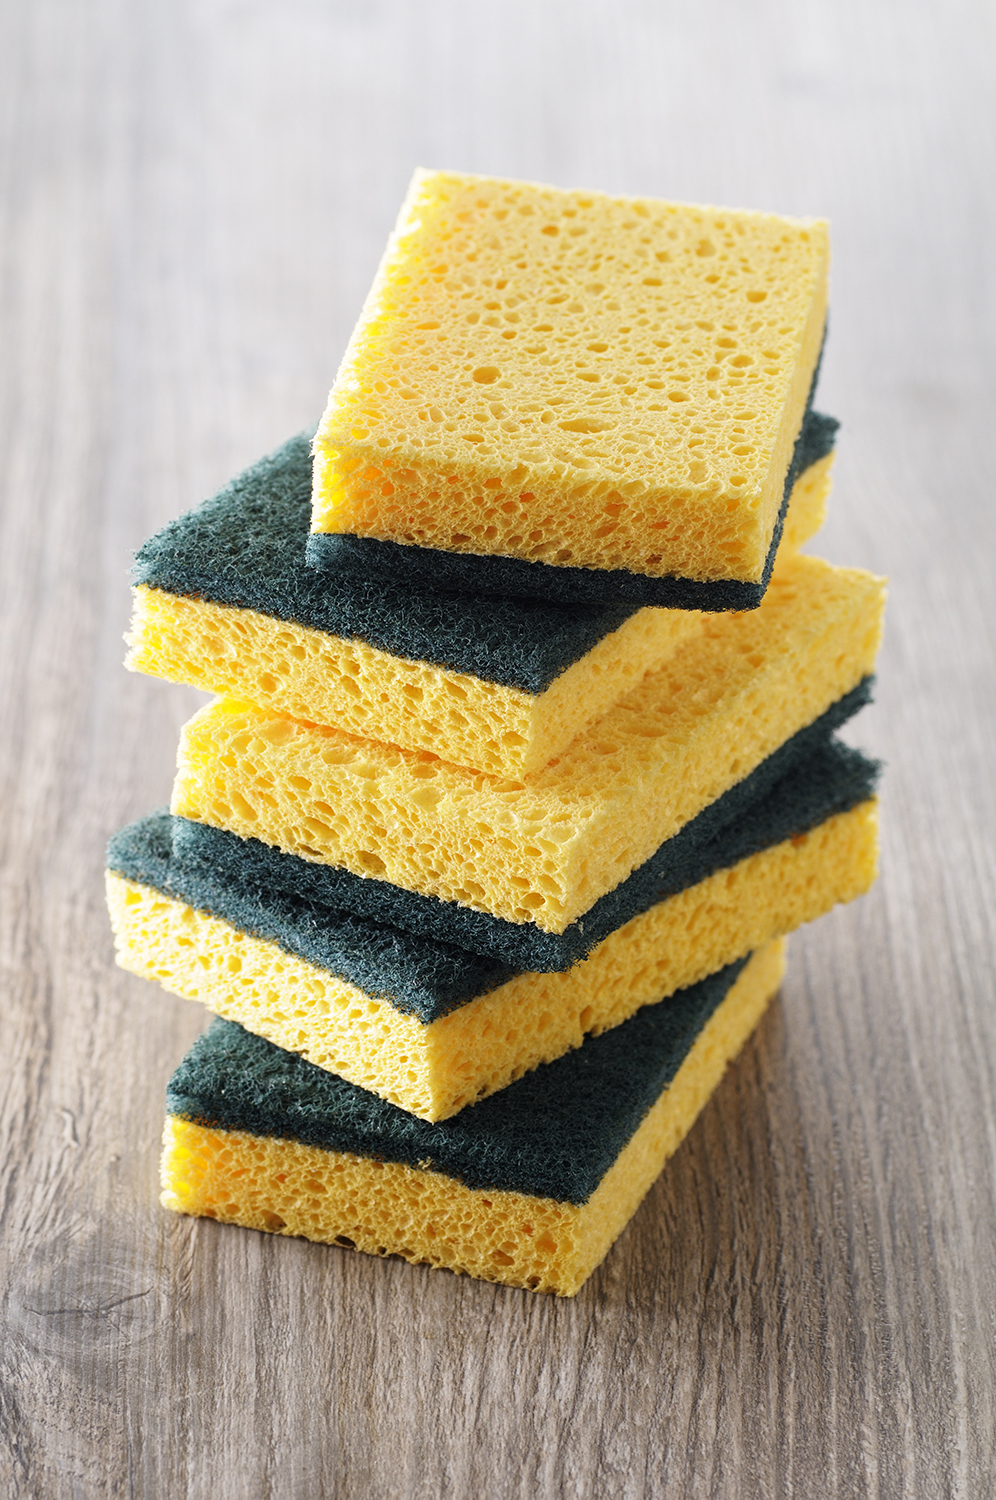 You Should Throw Away Your Germy Kitchen Sponge Immediately. Here's How to Wash Your Dishes Instead